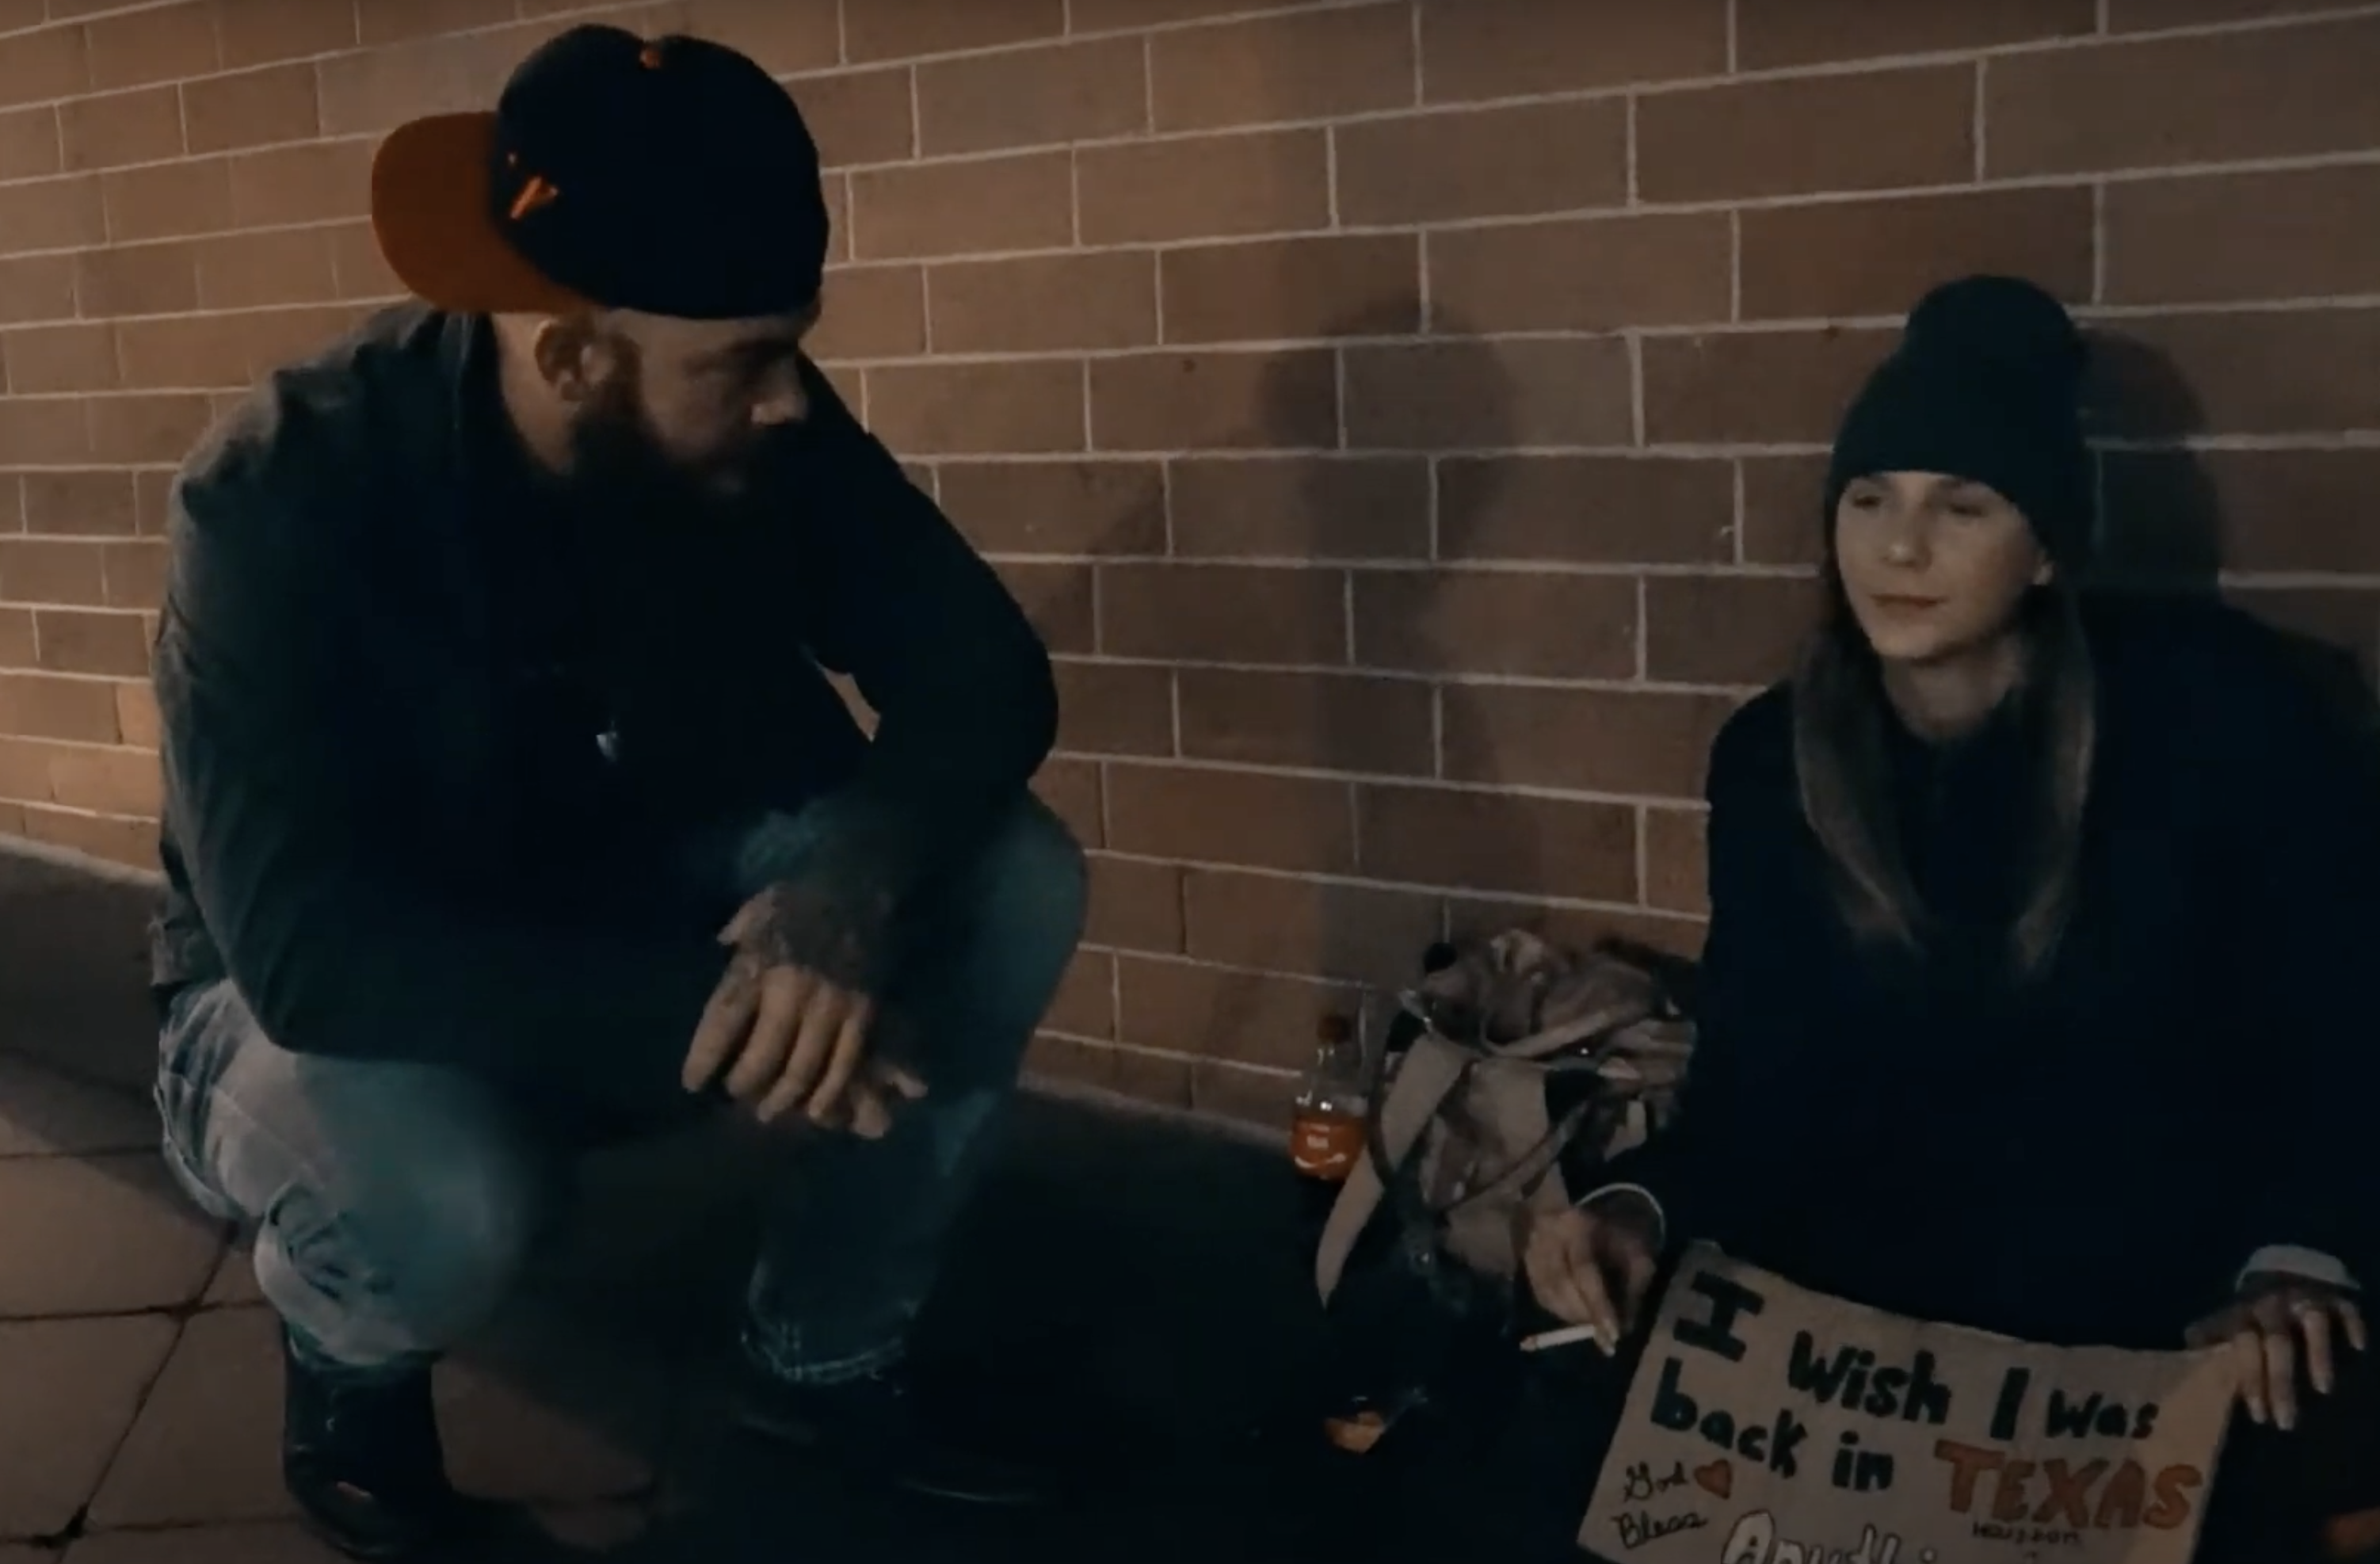 Adam-Talking-To-Homeless-Woman